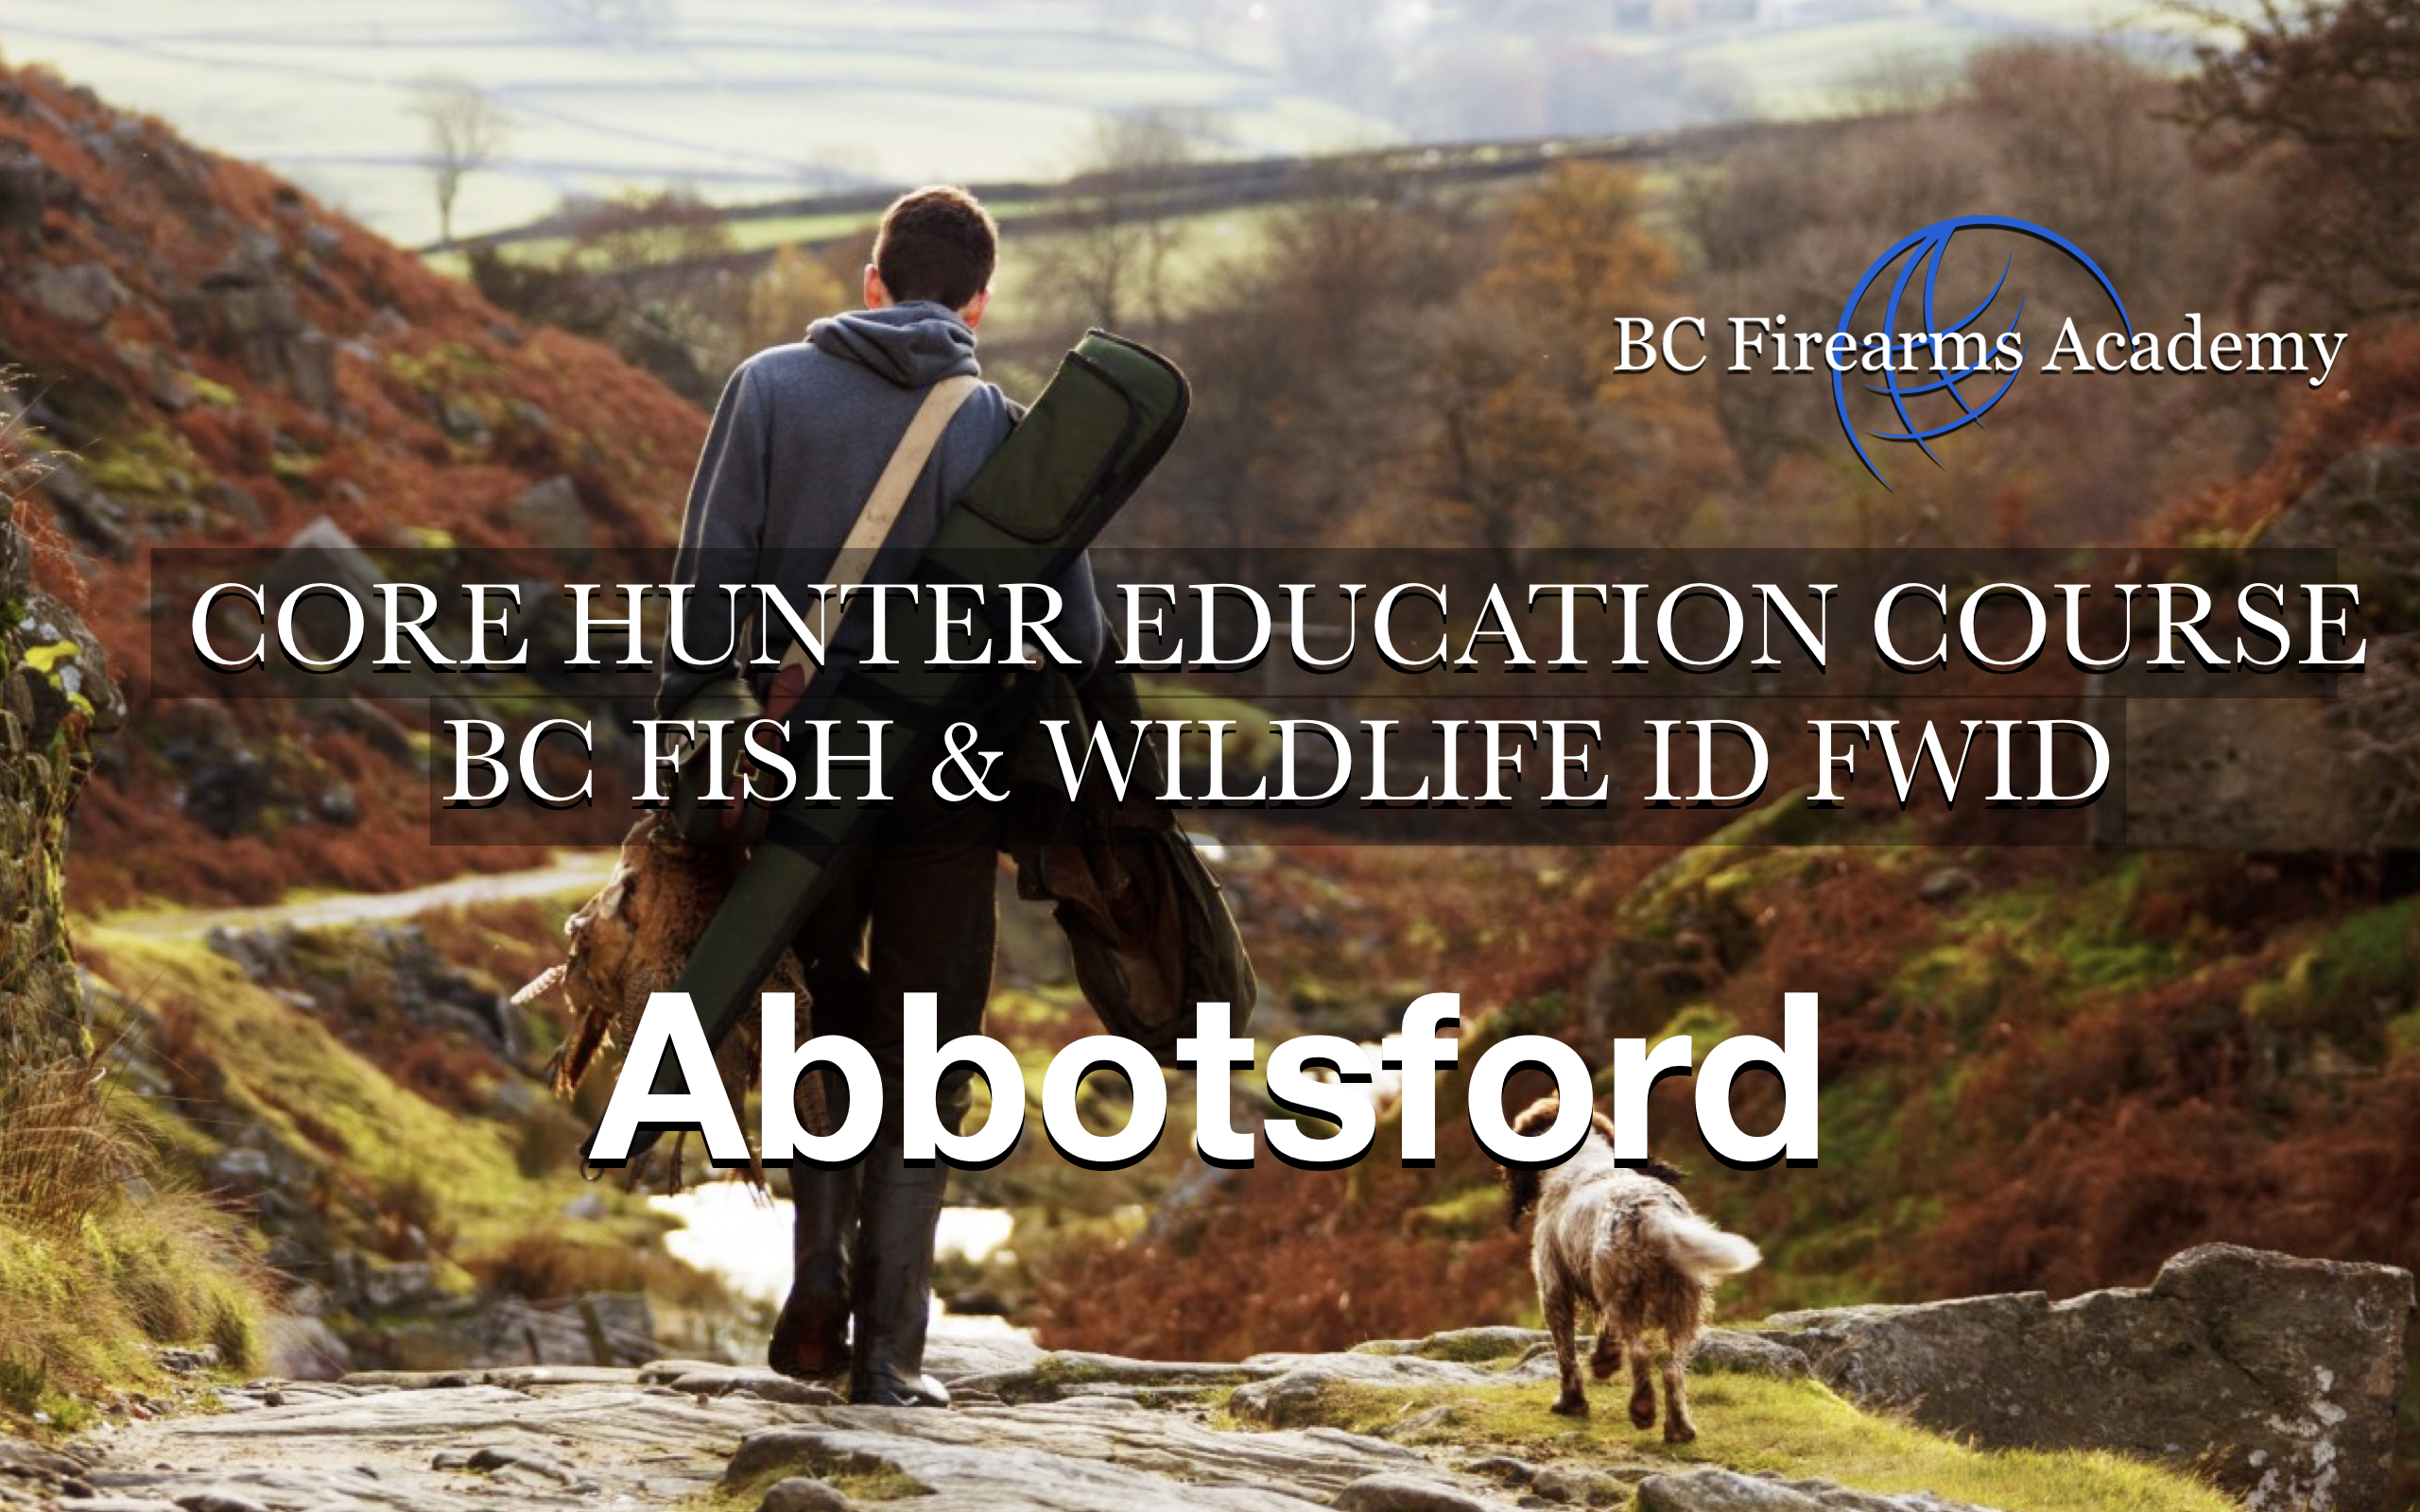 CORE Hunter Education Course BC Fish & Wildlife ID FWID Abby